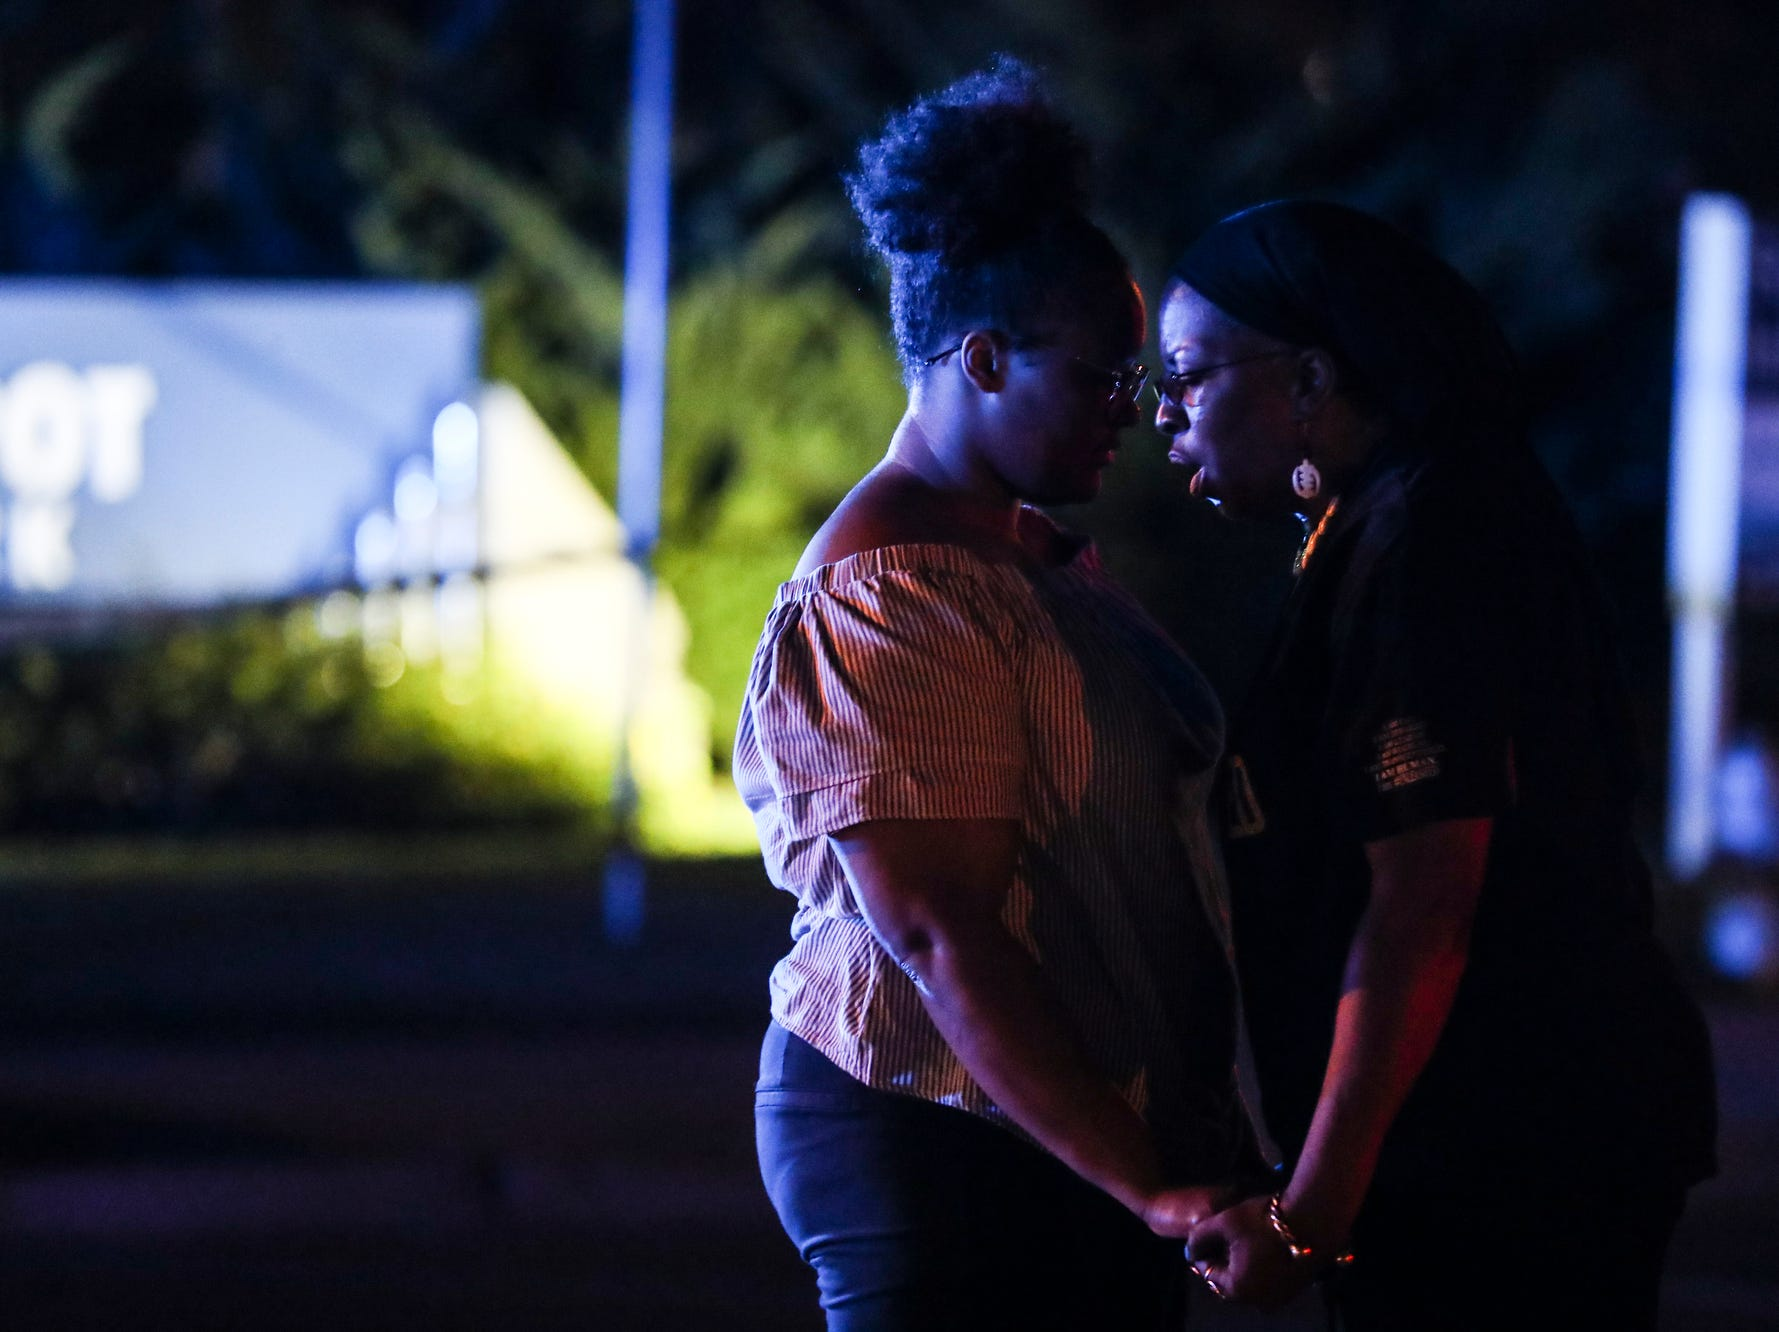 September 19 2018 - Britney Thornton, left, and Karen Spencer-McGee are seen along Airways Blvd. near the Memphis Police Department's Airways Station while protesting the officer-involved shooting of Martavious Banks. The protests came after news that officers involved in the shooting of Banks may have improperly switched off their dashboard or body cameras, or didn't turn them on.